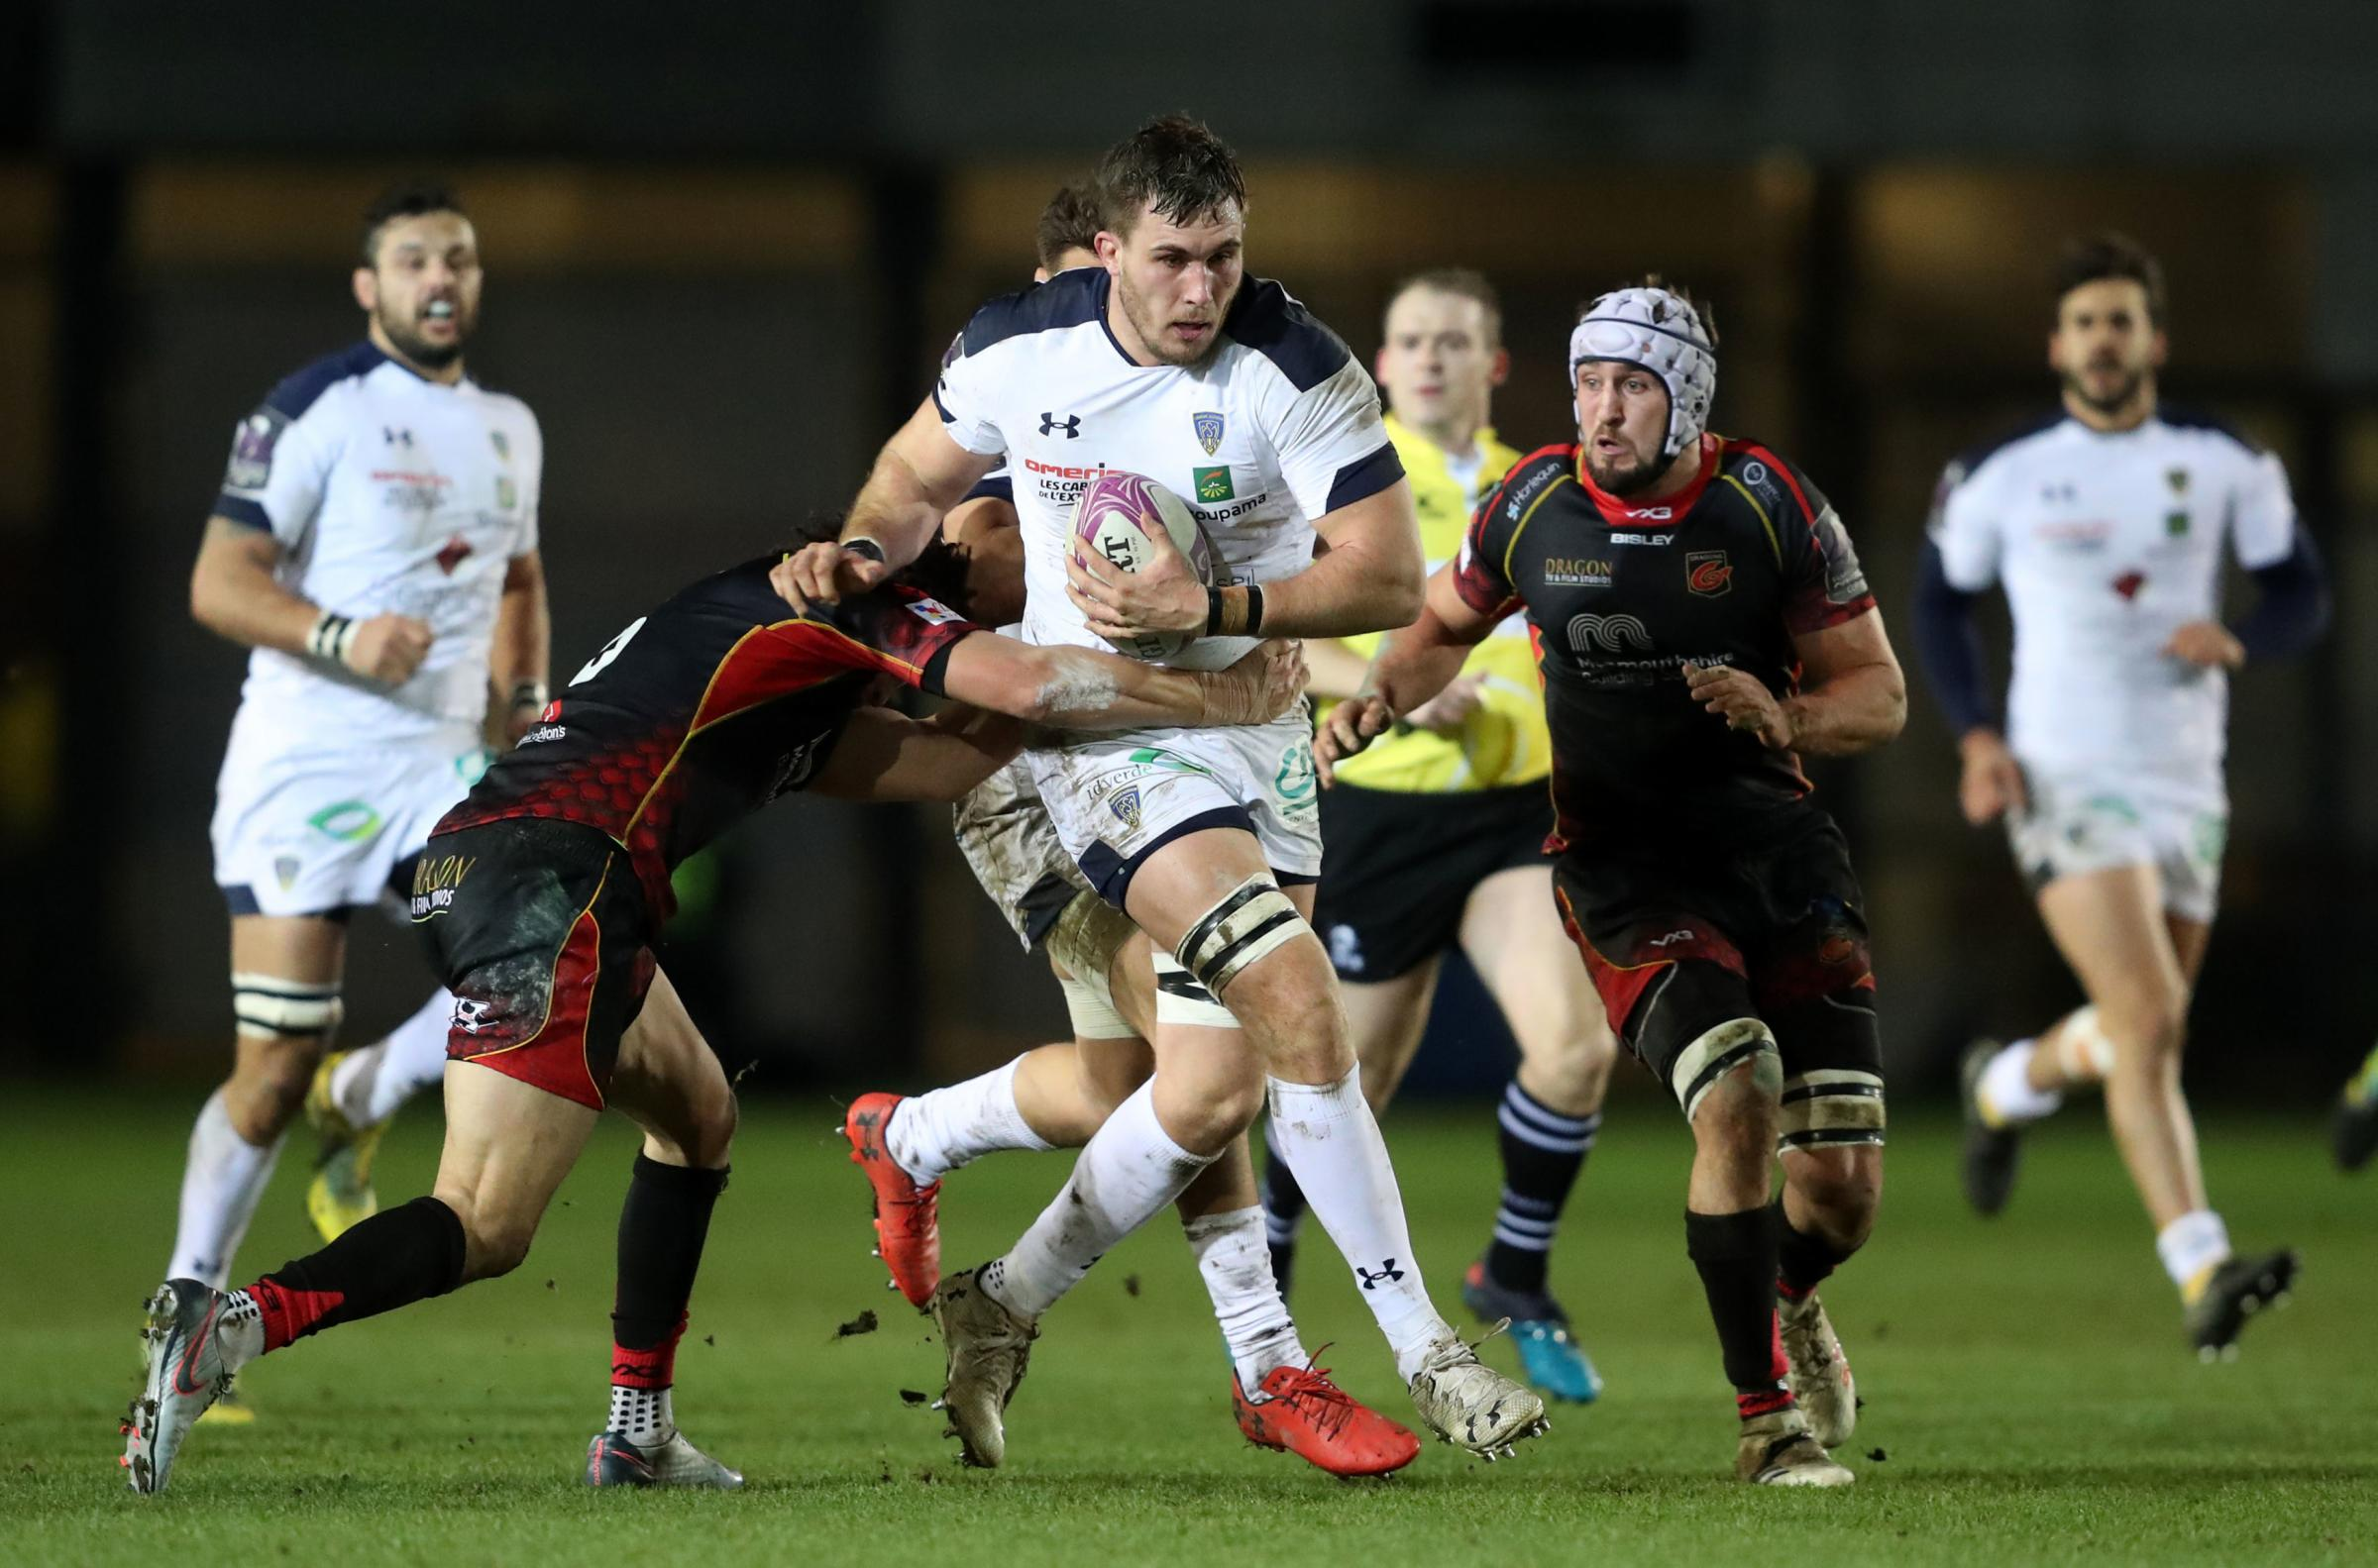 OVERPOWERED: Clermont ran amok against the Dragons in Newport